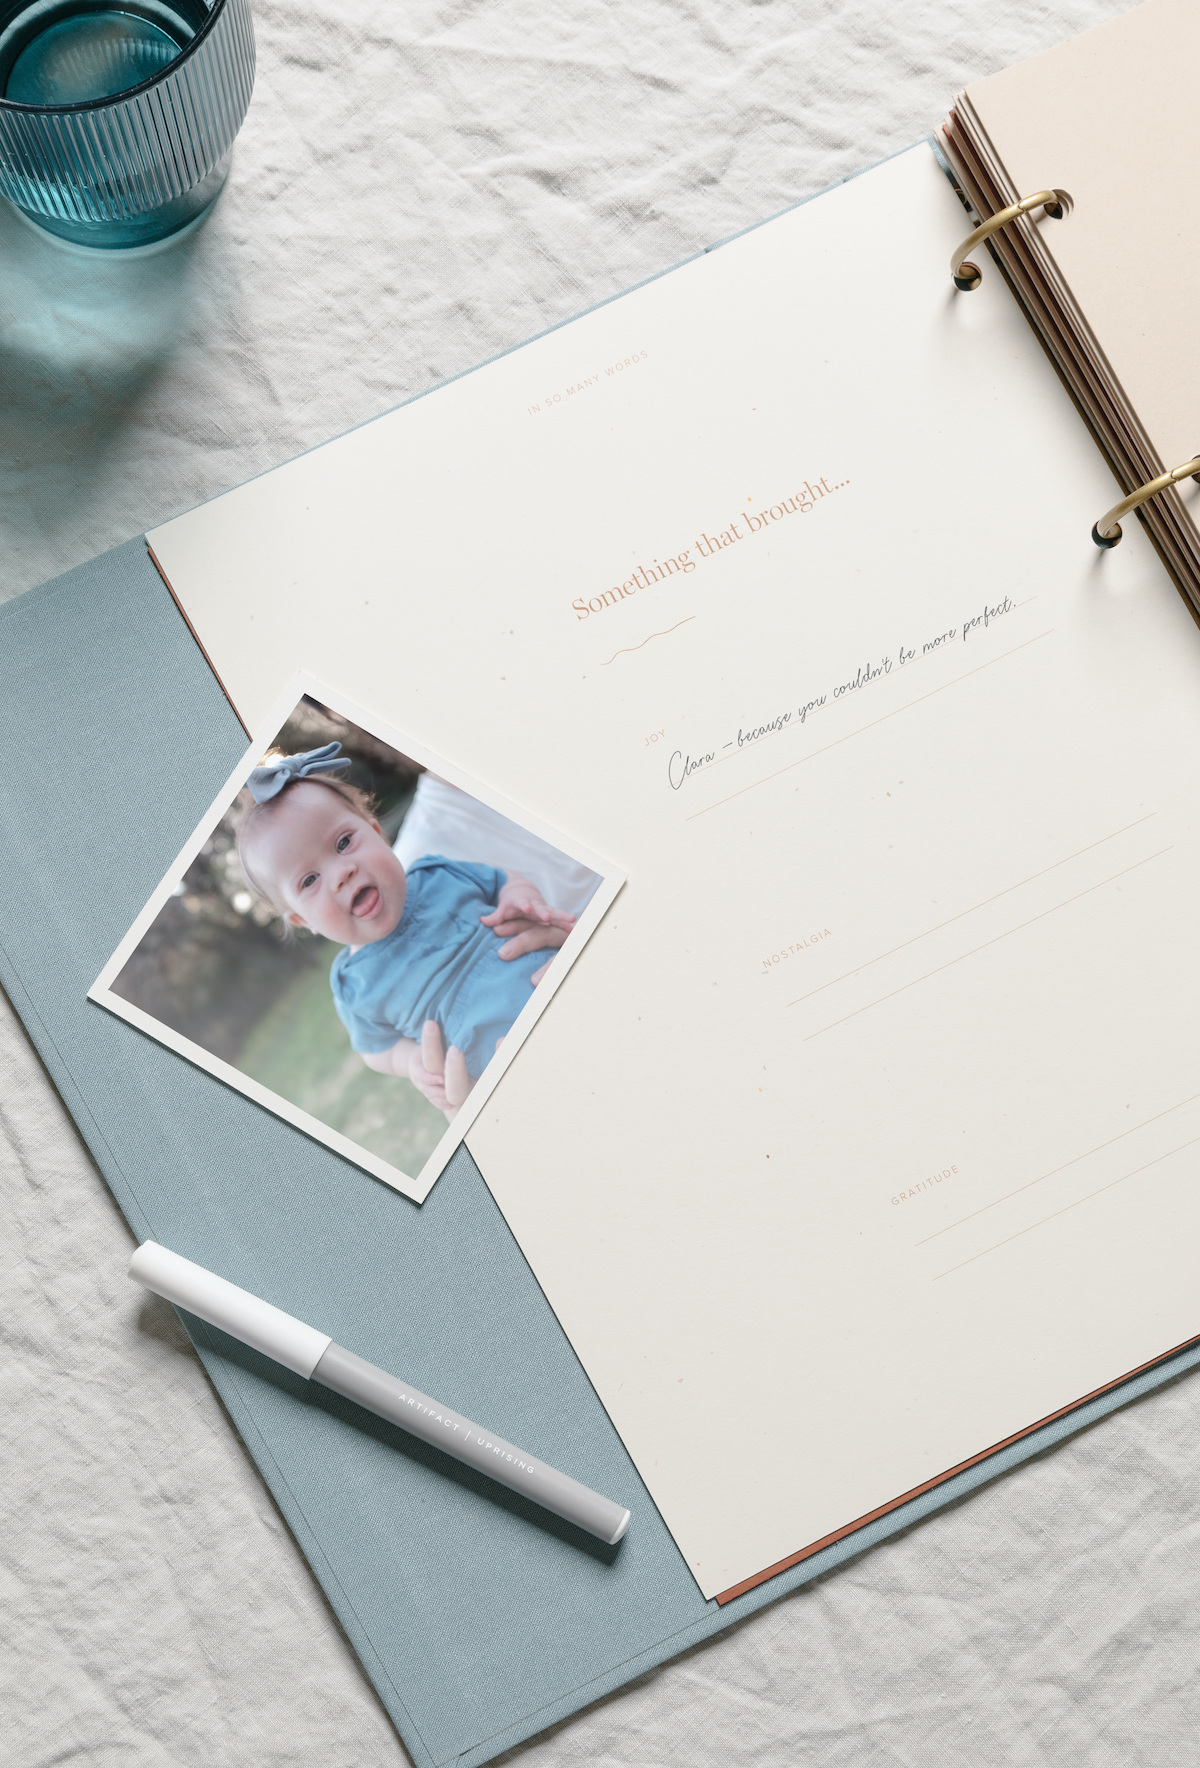 Photo of baby girl next to open scrapbook with writing inside